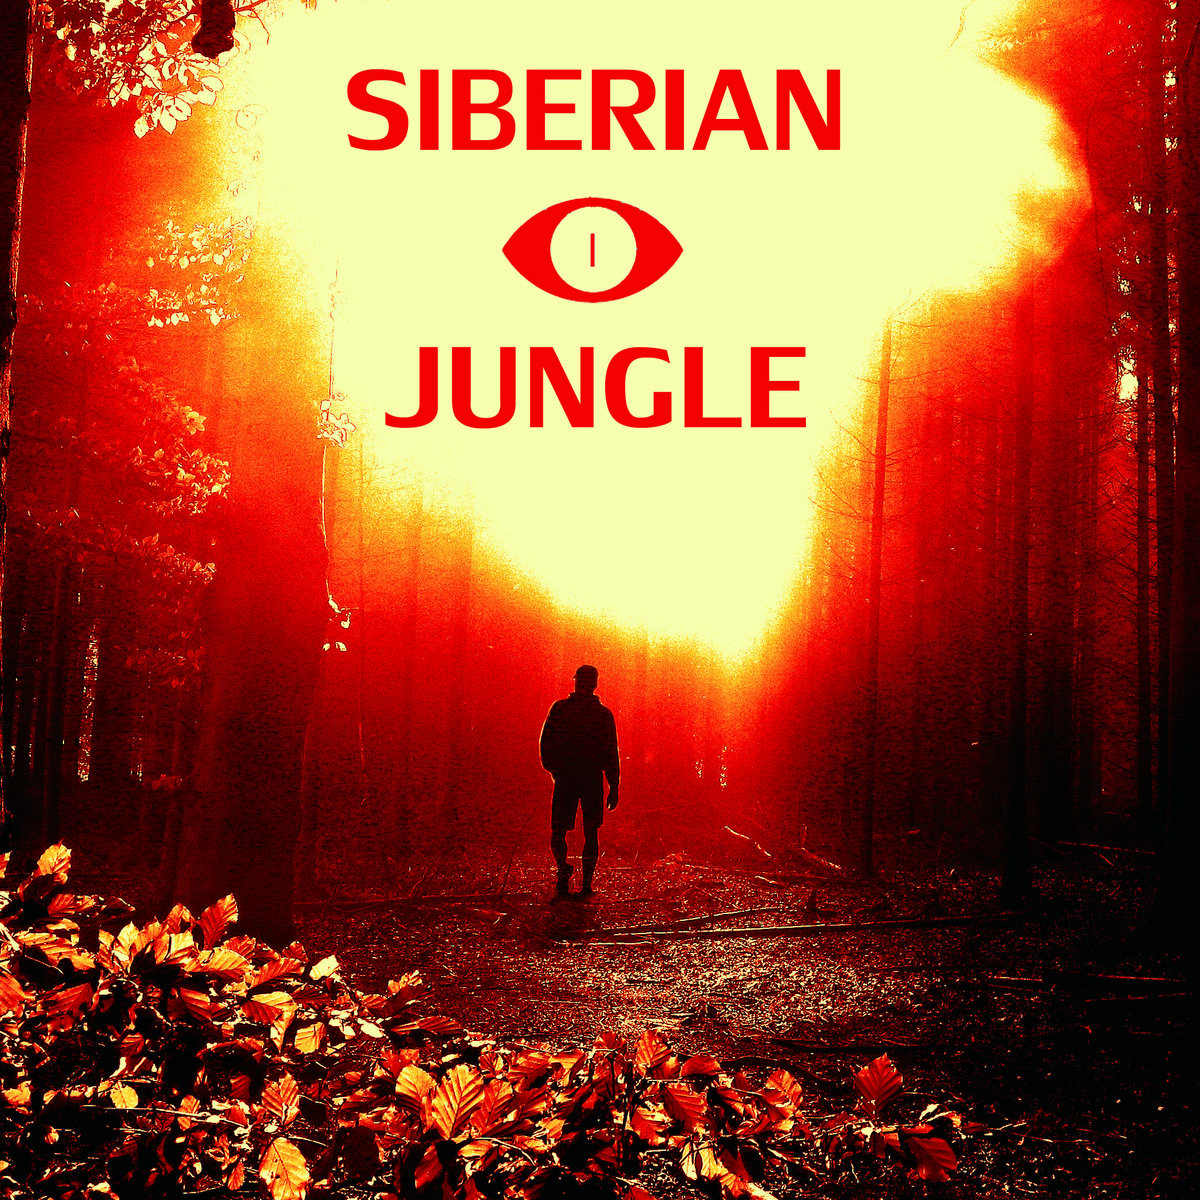 DJ DED - Increase of Emotions @ 'Siberian Jungle - Volume 1' album (atmospheric drum'n'bass, electronic)